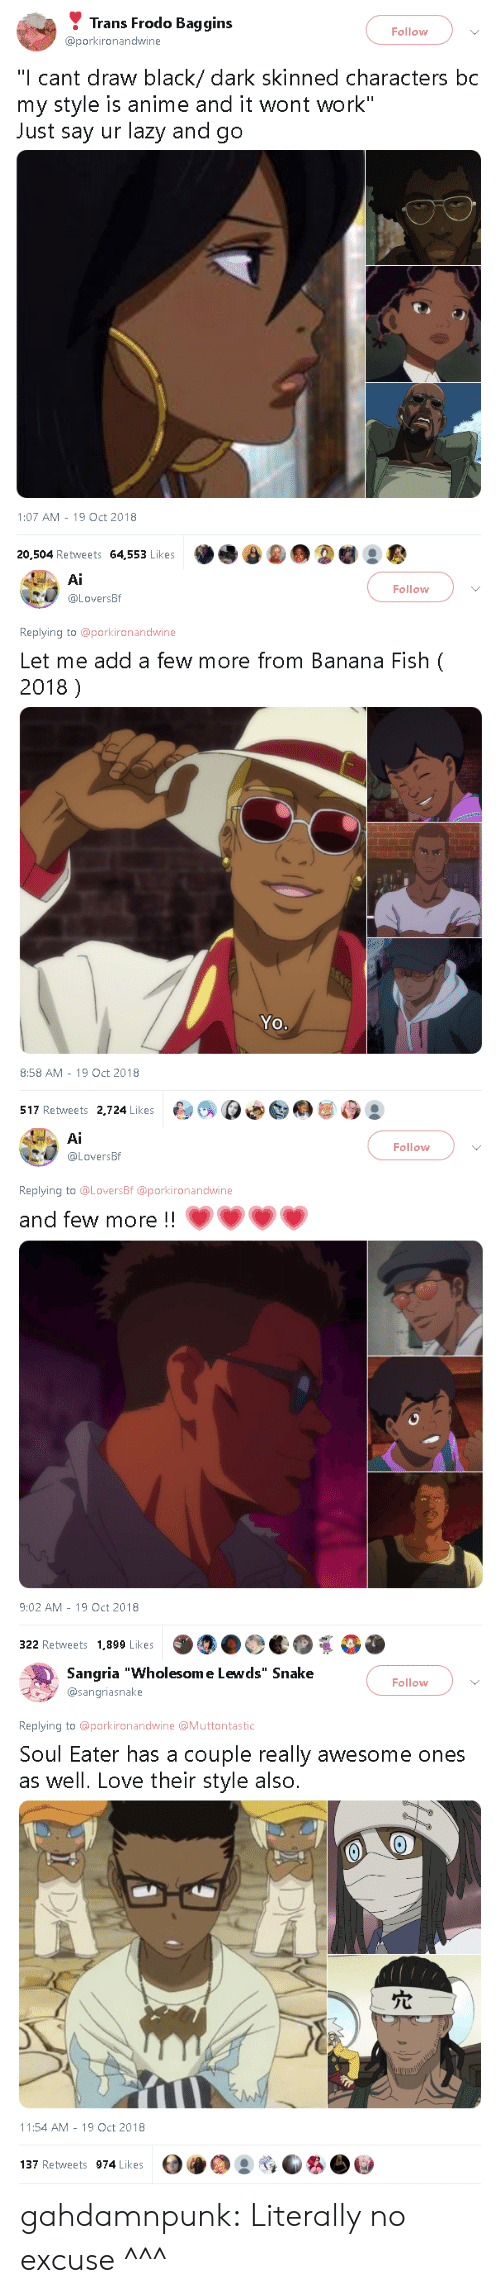 """Anime, Lazy, and Love: Trans Frodo Baggins  @porkironandwine  Follow  """"I cant draw black/ dark skinned characters bc  my style is anime and it wont work""""  Just say ur lazy and go  1:07 AM-19 Oct 2018  20,504 Retweets 64,553 Likes   Ai  @LoversBf  Follow  Replying to @porkironandwine  Let me add a few more from Banana Fish (  2018)  Yo.  8:58 AM -19 Oct 2018  517 Retweets 2,724 Likes  臼여 ρΦ@@屡ら   Ai  Follow  .U @LoversBf  Replying to @LoversBf @porkironandwine  and few more !!  9:02 AM-19 Oct 2018  322 Retweets 1,899 Likes   Sangria """"Wholesom e Lewds"""" Snake  @sangriasnake  Follow  Replying to @porkironandwine @Muttontastic  Soul Eater has a couple really awesome ones  as well. Love their style also.  穴  hi  11:54 AM-19 Oct 2018  137 Retweets 974 Likes gahdamnpunk: Literally no excuse ^^^"""